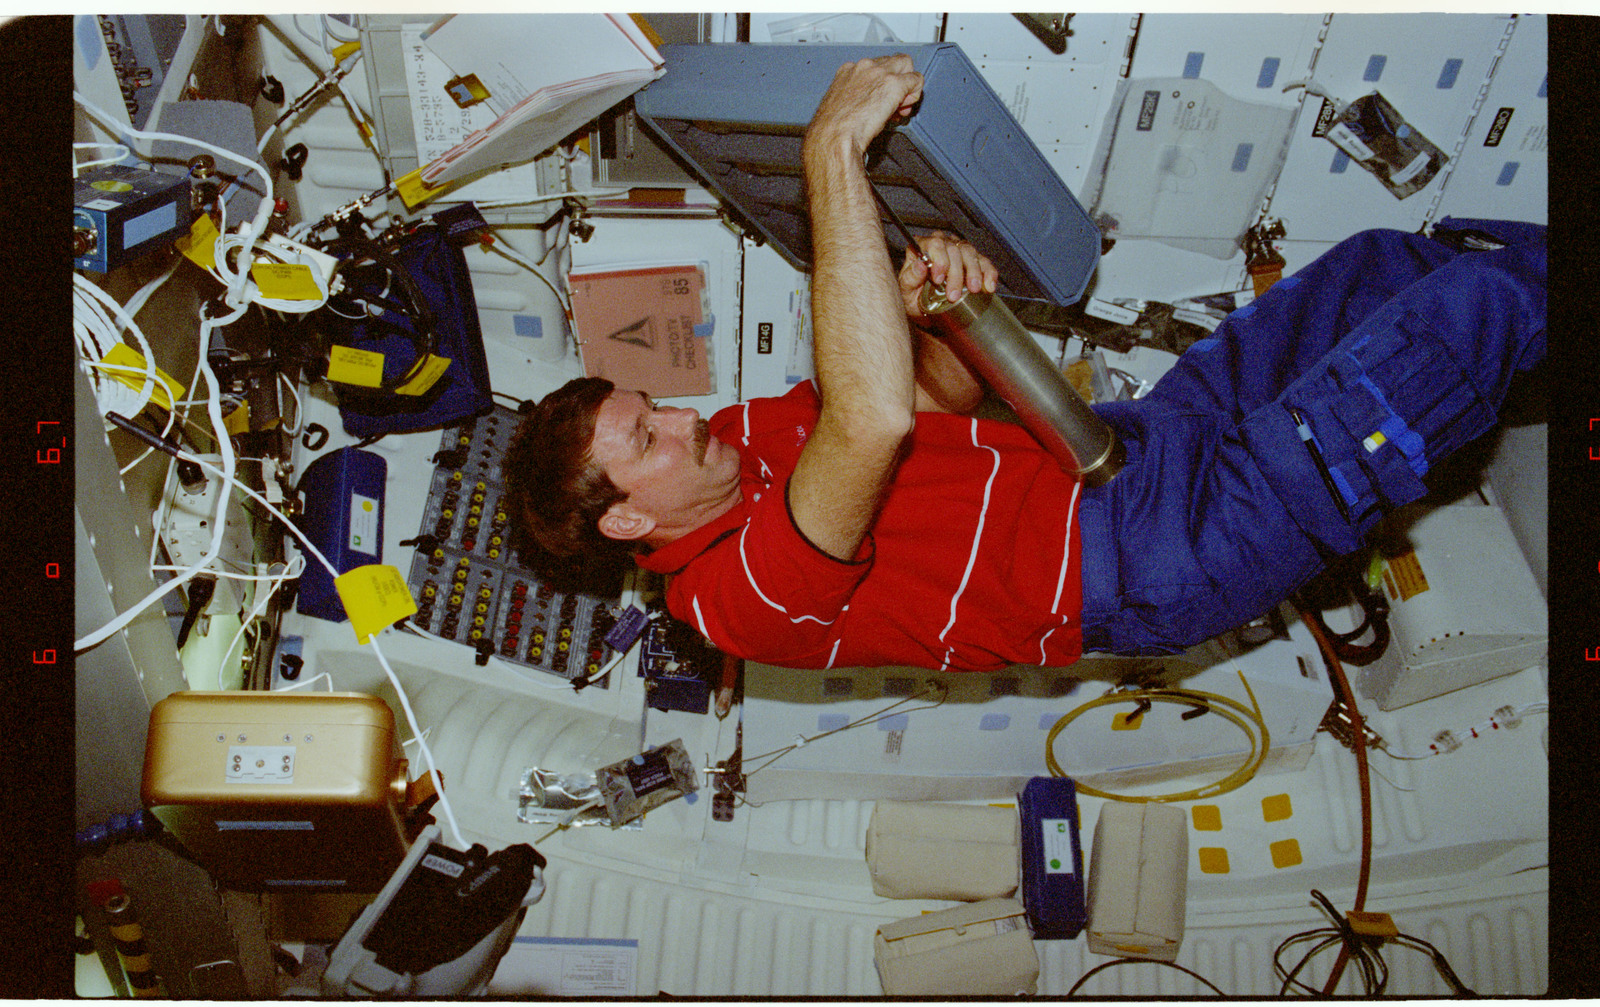 STS085-315-022 - STS-085 - PCG-STS - Rominger sets up middeck experiment